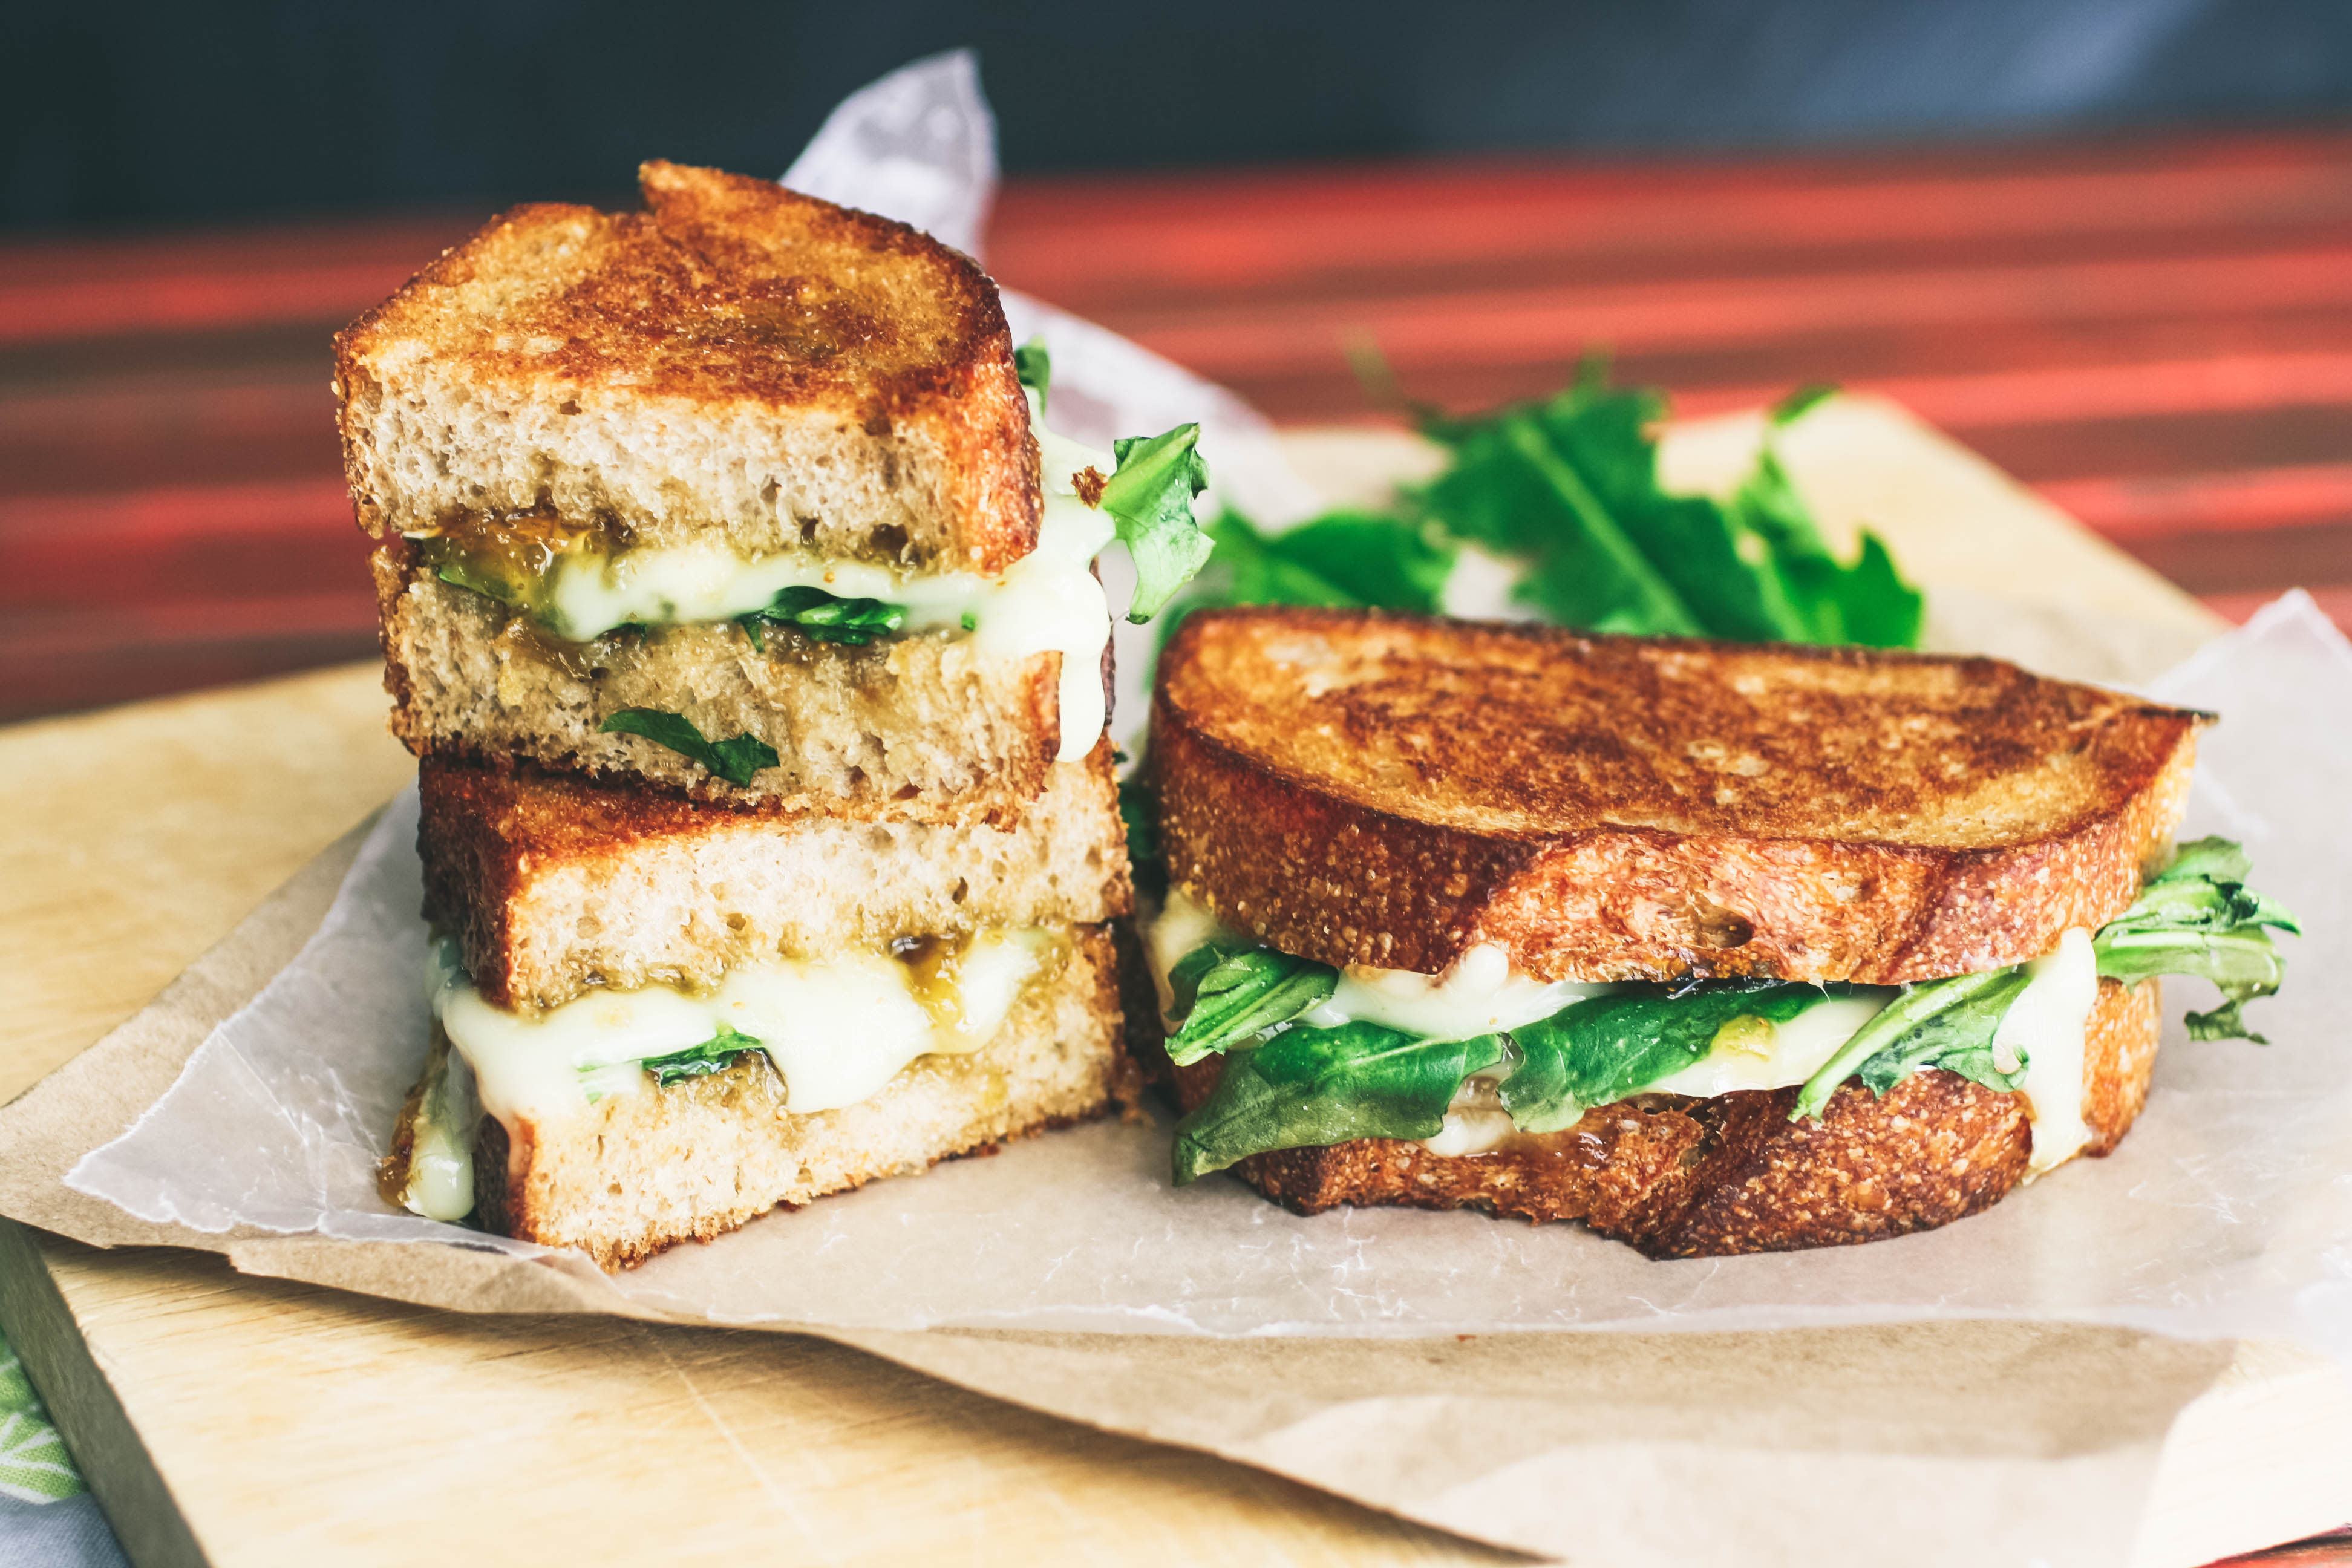 Grilled Brie, Fig Jam, and Dandelion Greens Sandwiches make a flavorful meal! You'll adore how flavorful these Grilled Brie, Fig Jam, and Dandelion Greens Sandwiches are.